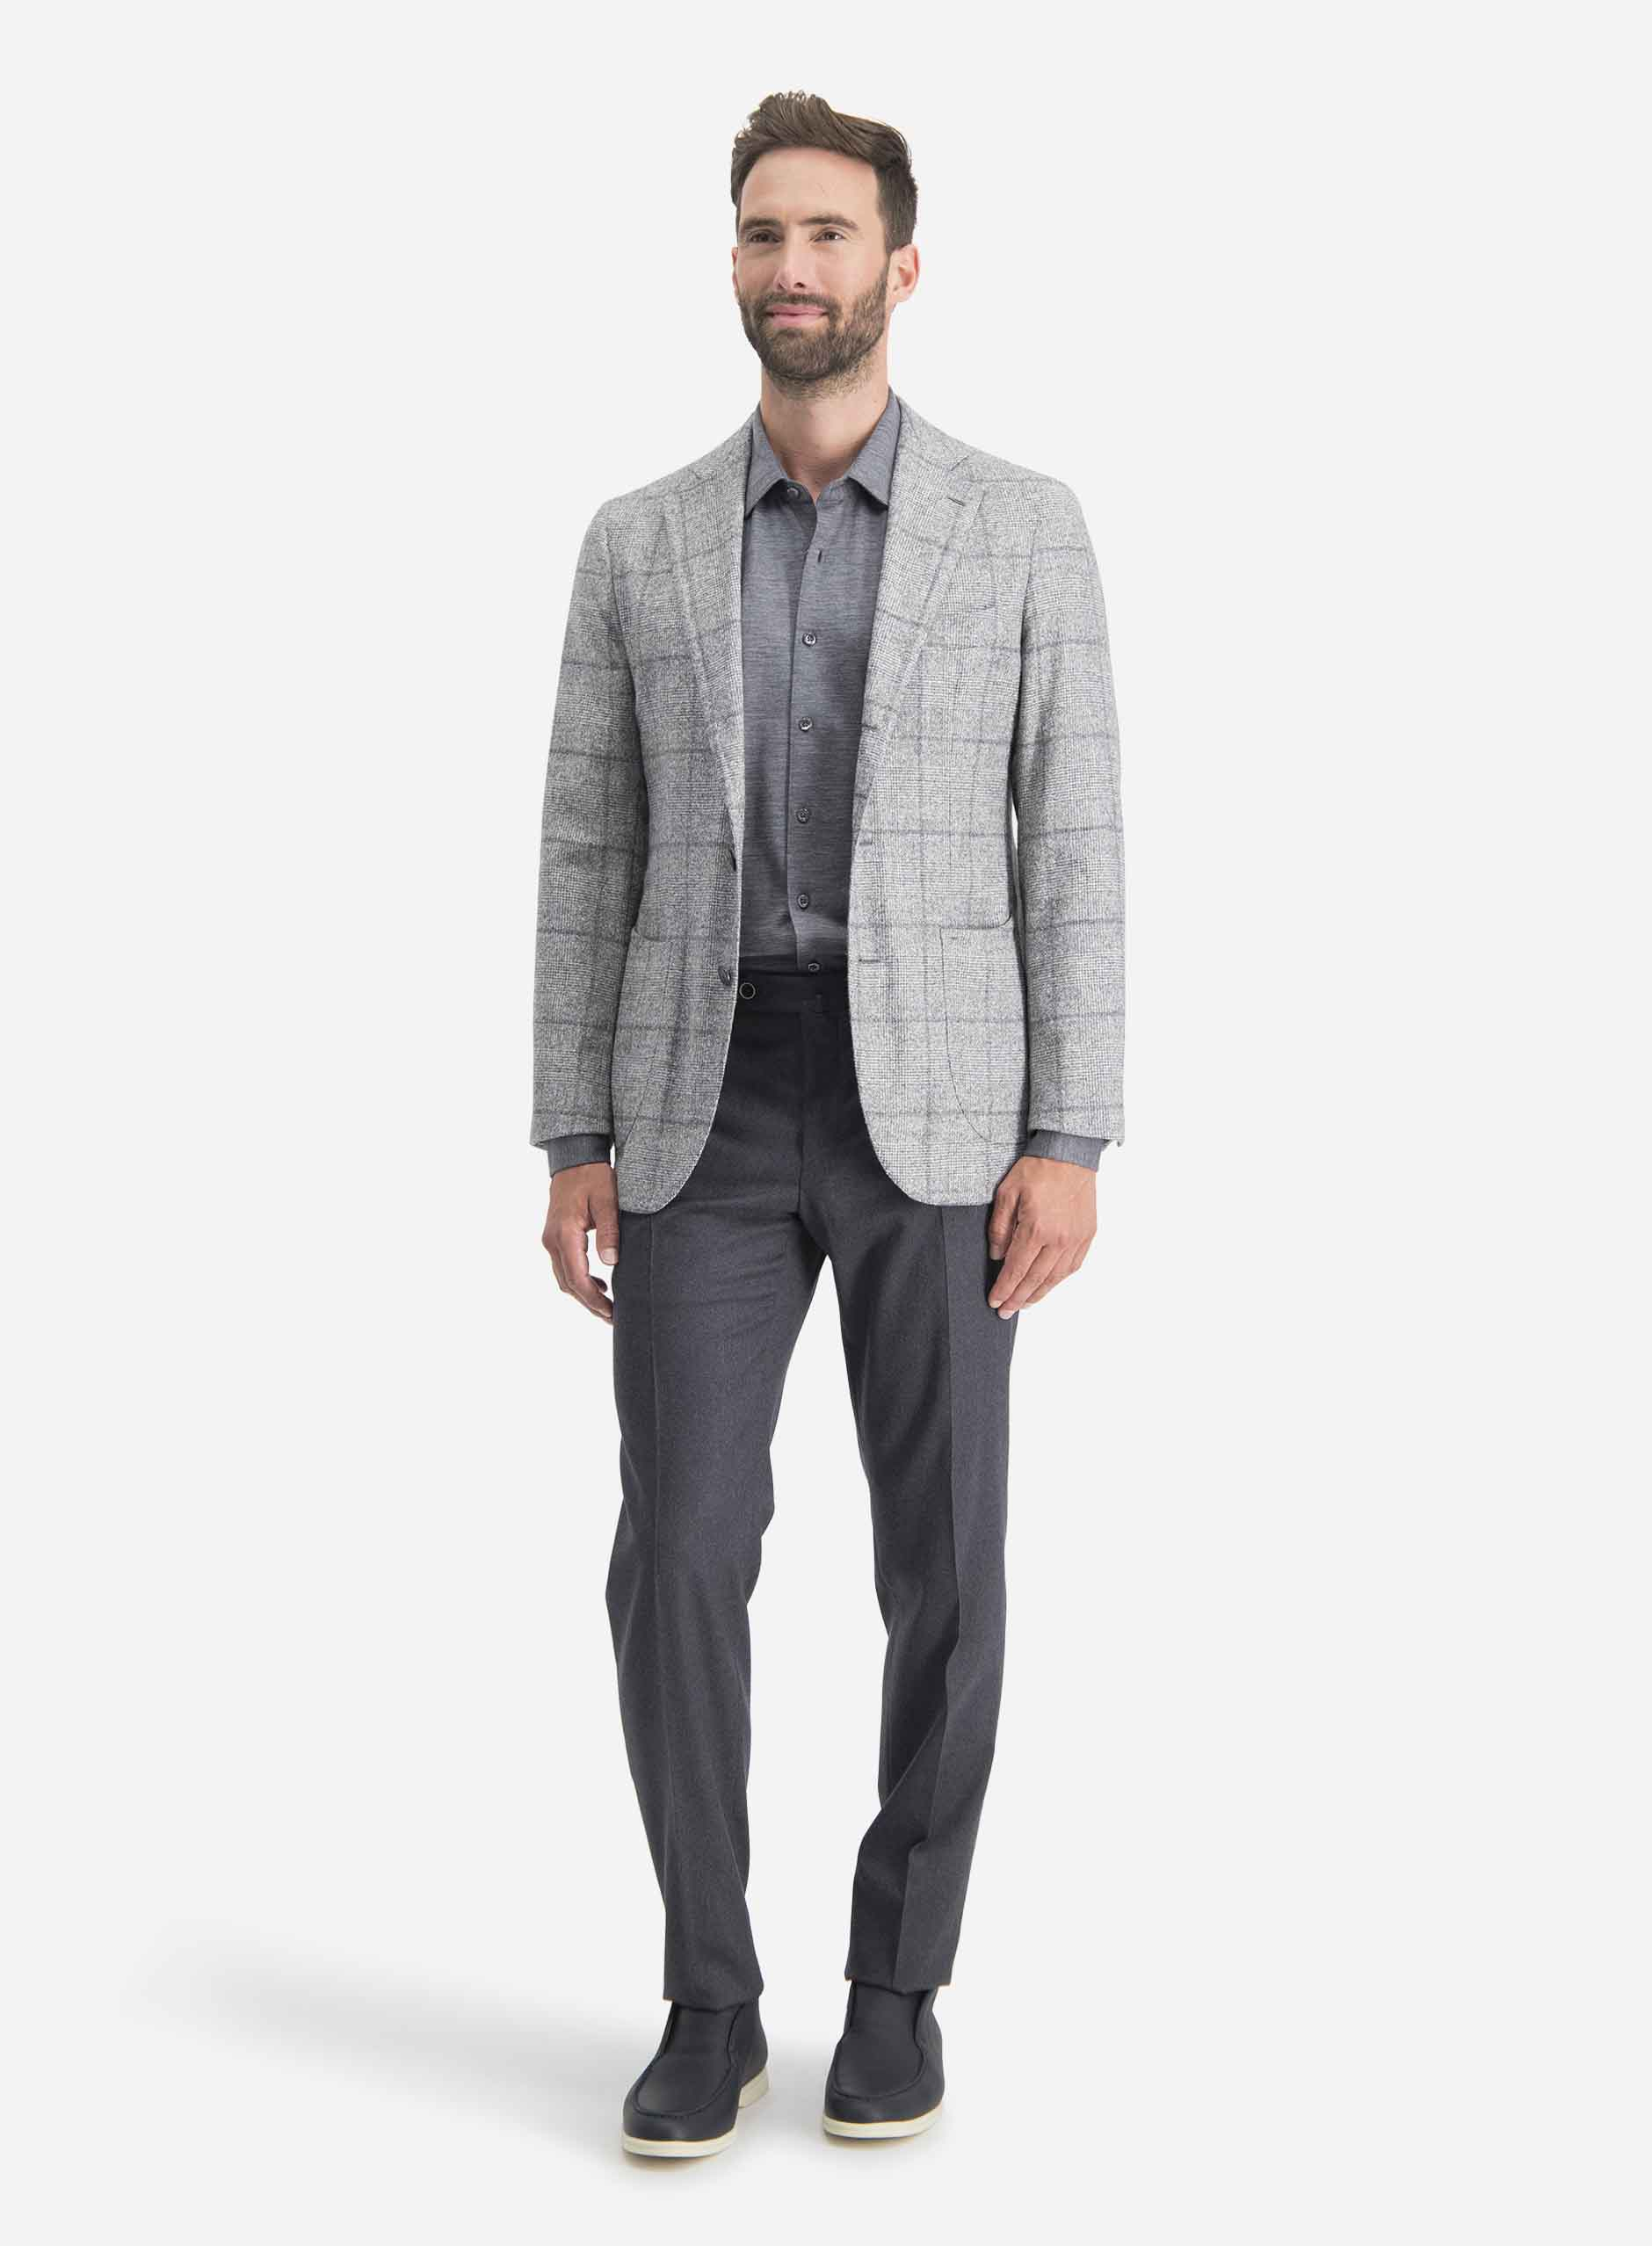 Casual tailoring look